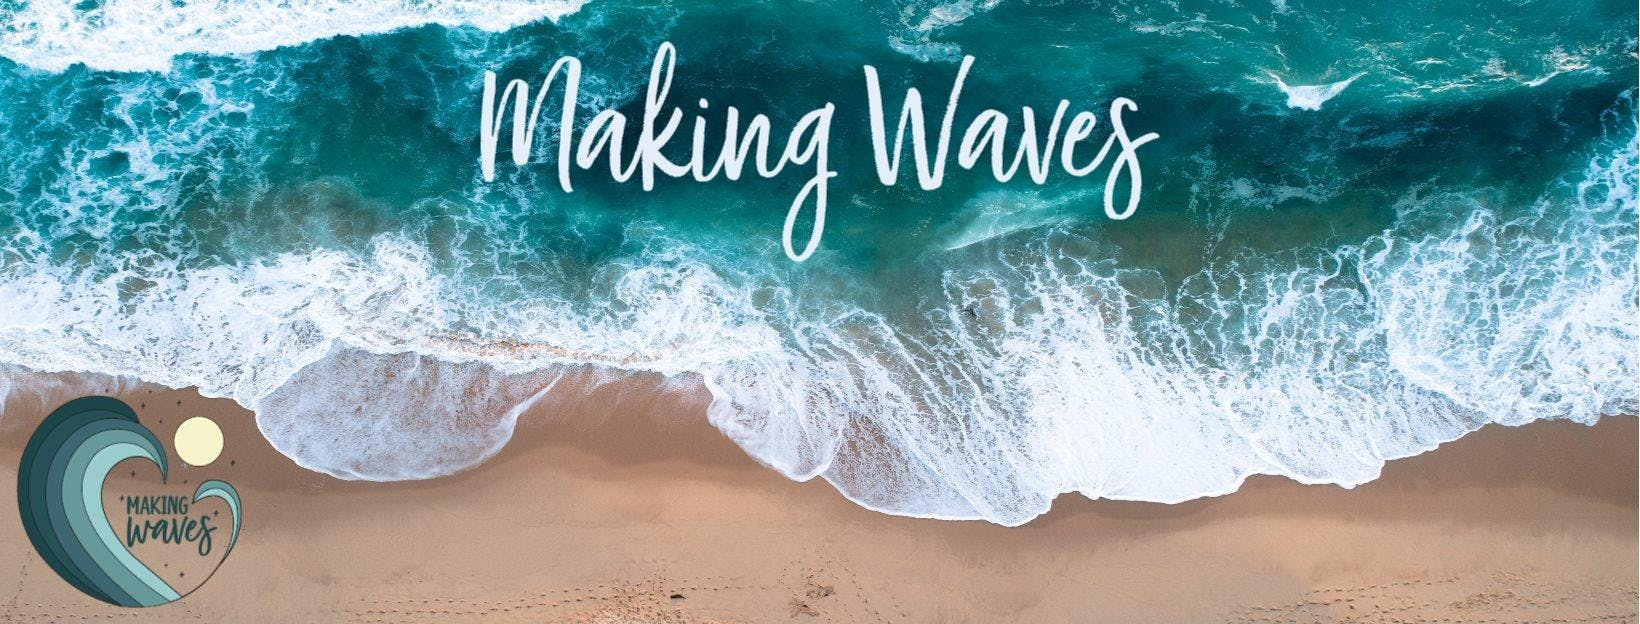 Making Waves: Community & Connection banner